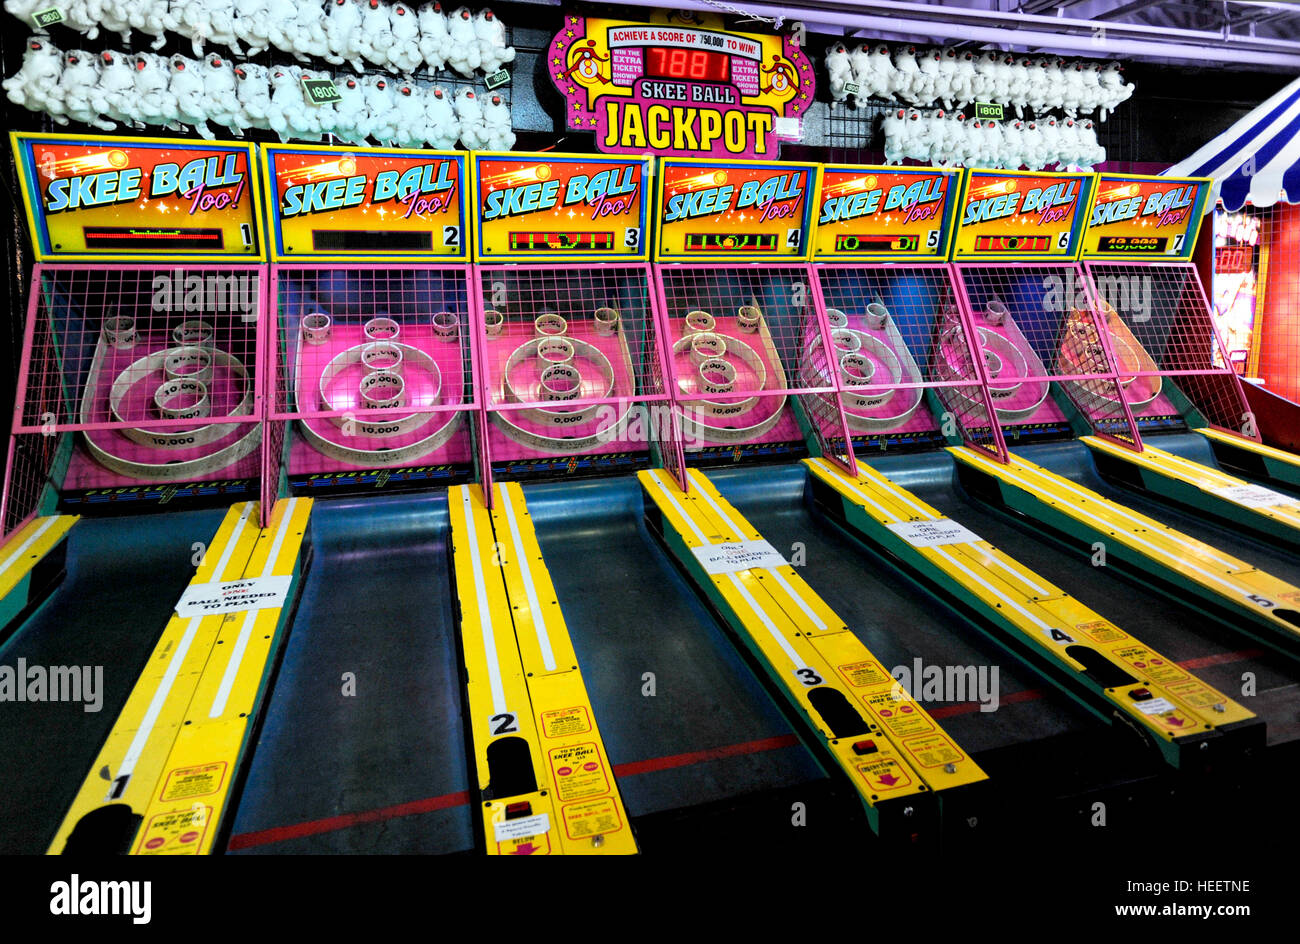 A Skeeball game in a Gatlinburg Tennessee amusements arcade, - Stock Image